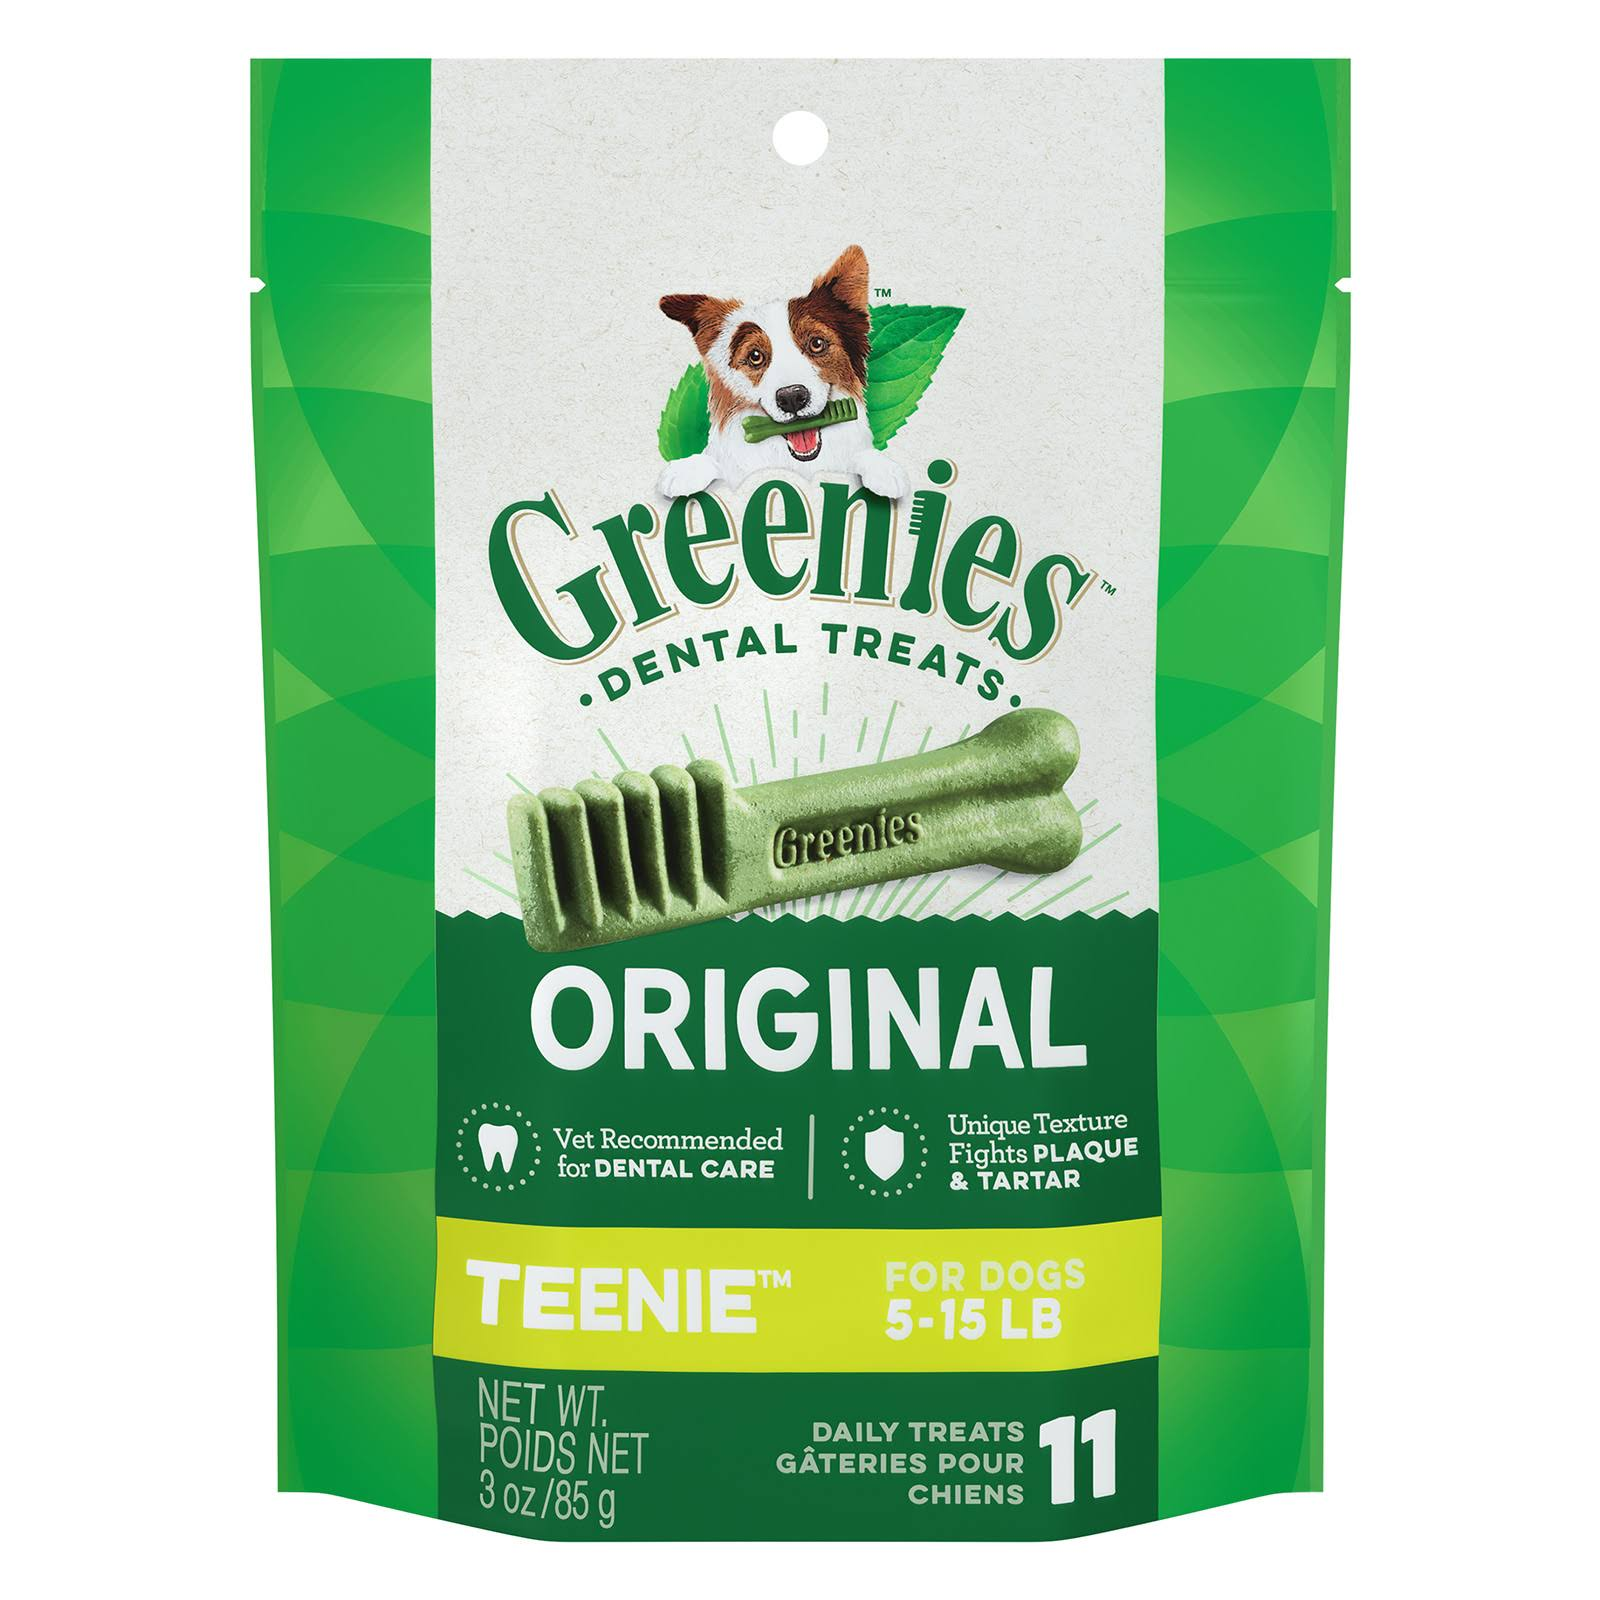 Greenies Original Teenie Dental Dog Treats - 3oz